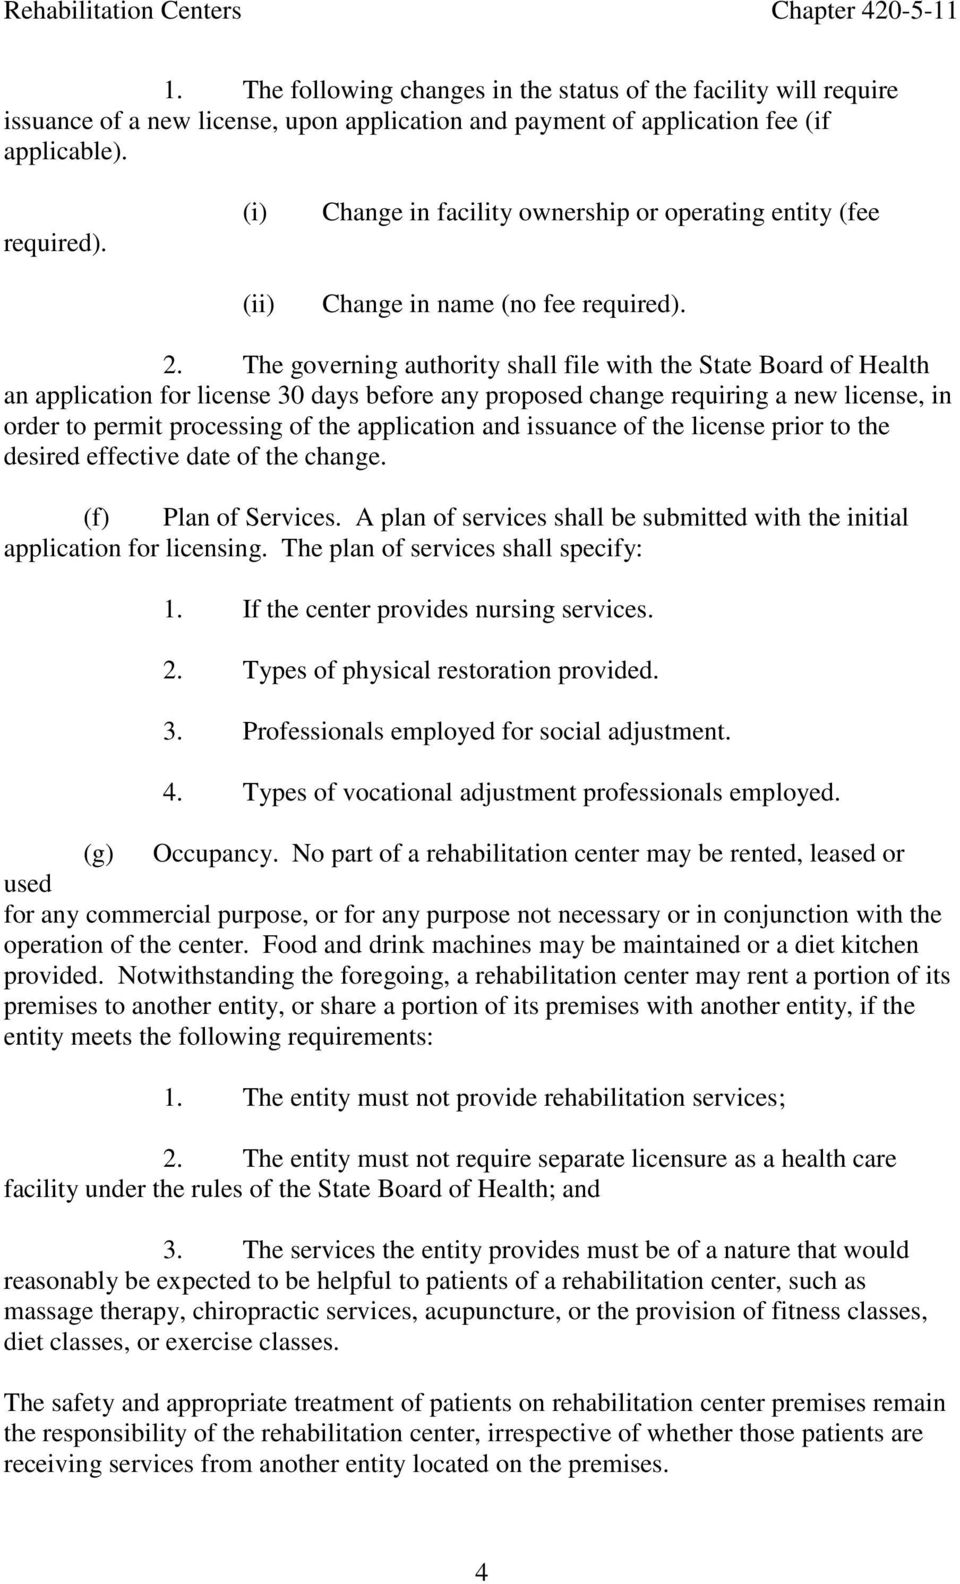 The governing authority shall file with the State Board of Health an application for license 30 days before any proposed change requiring a new license, in order to permit processing of the